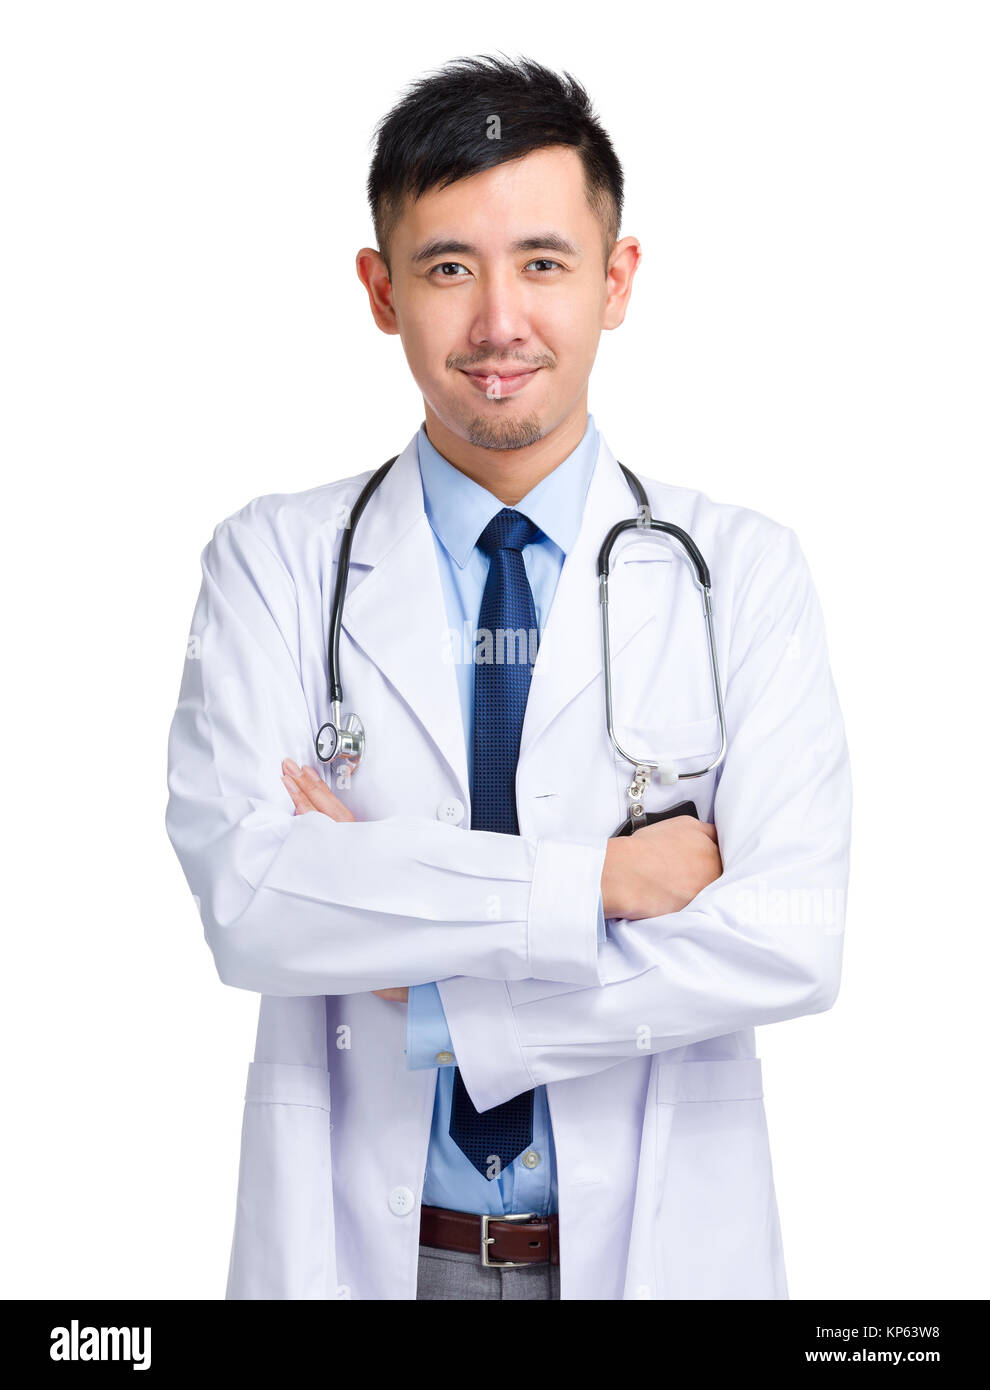 Docteur asiatique Photo Stock